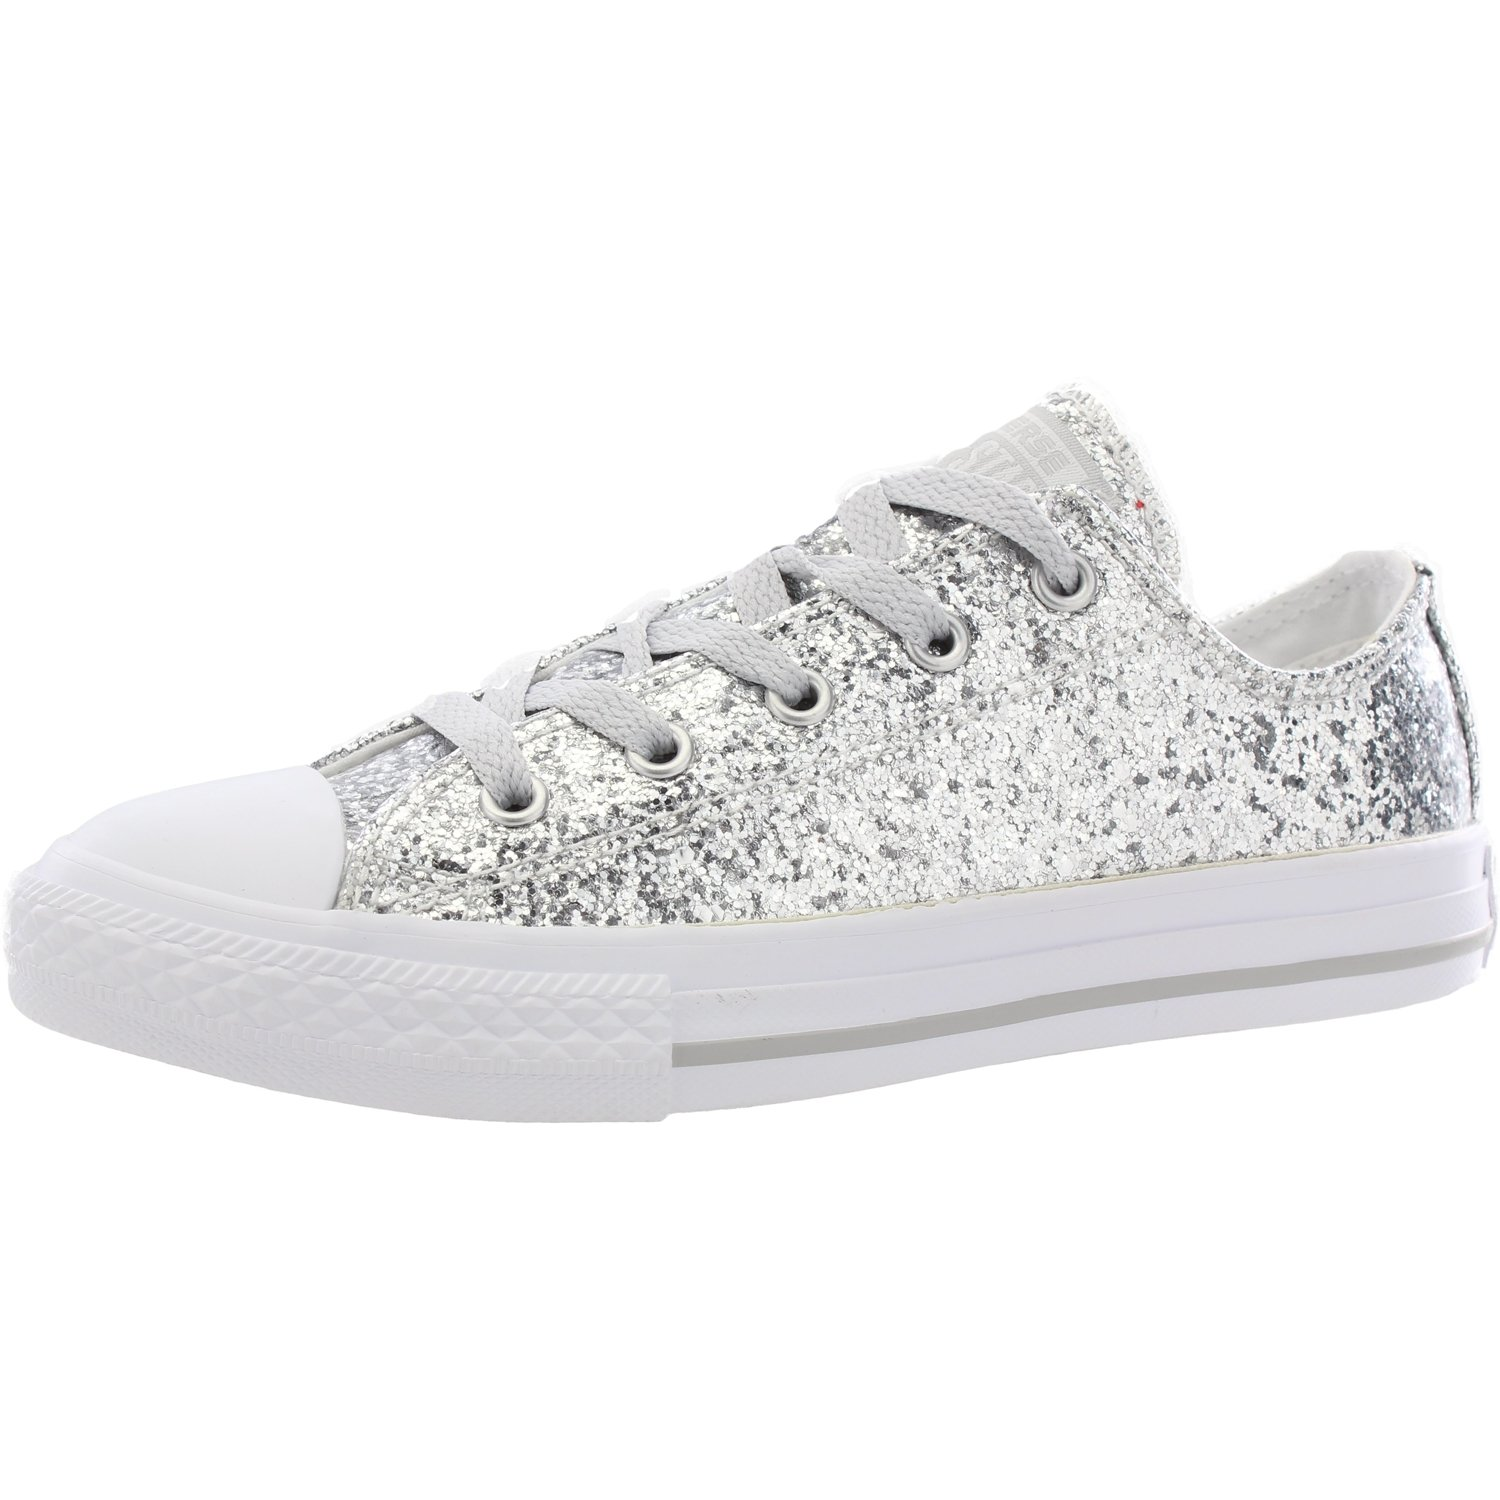 Converse Ox Galaxy Glimmer LittleBig Kid Lace up Girls Sneakers